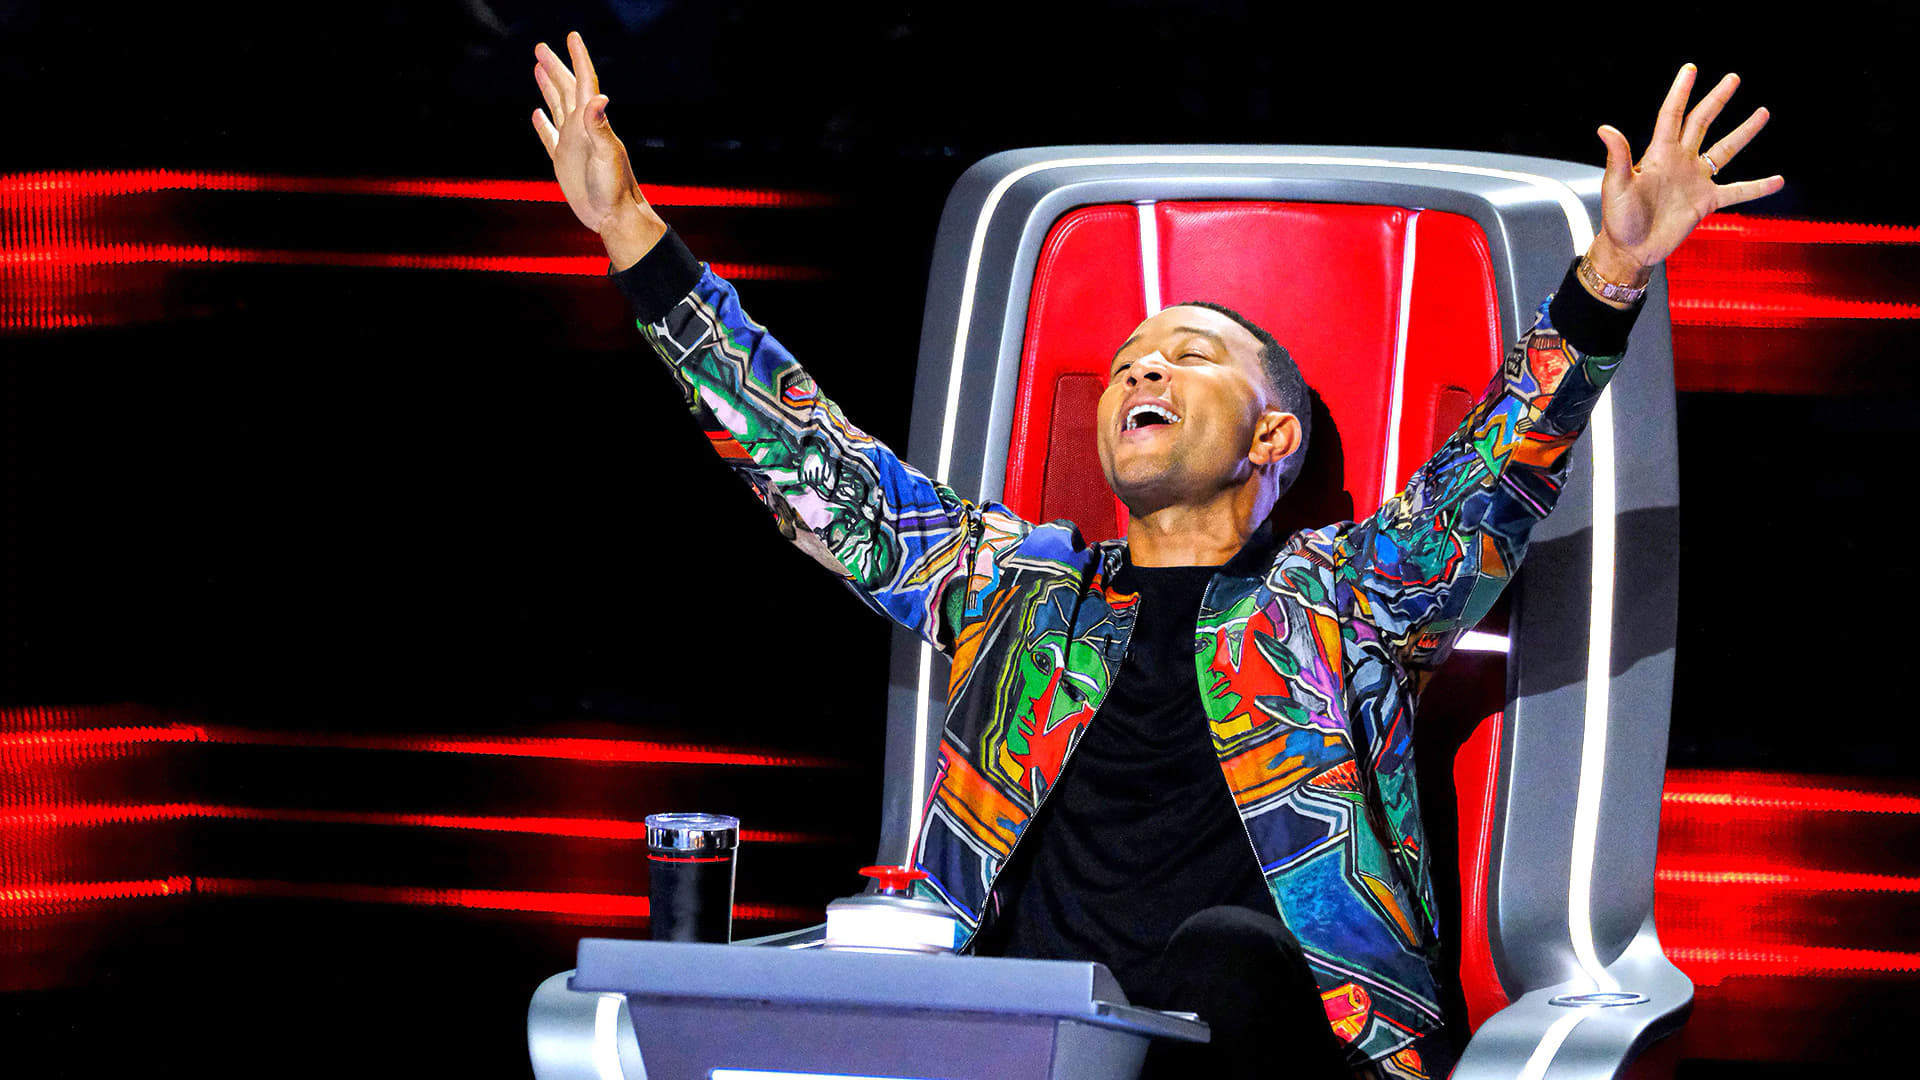 The Voice - Season 17 Episode 2 : The Blind Auditions Premiere, Part 2